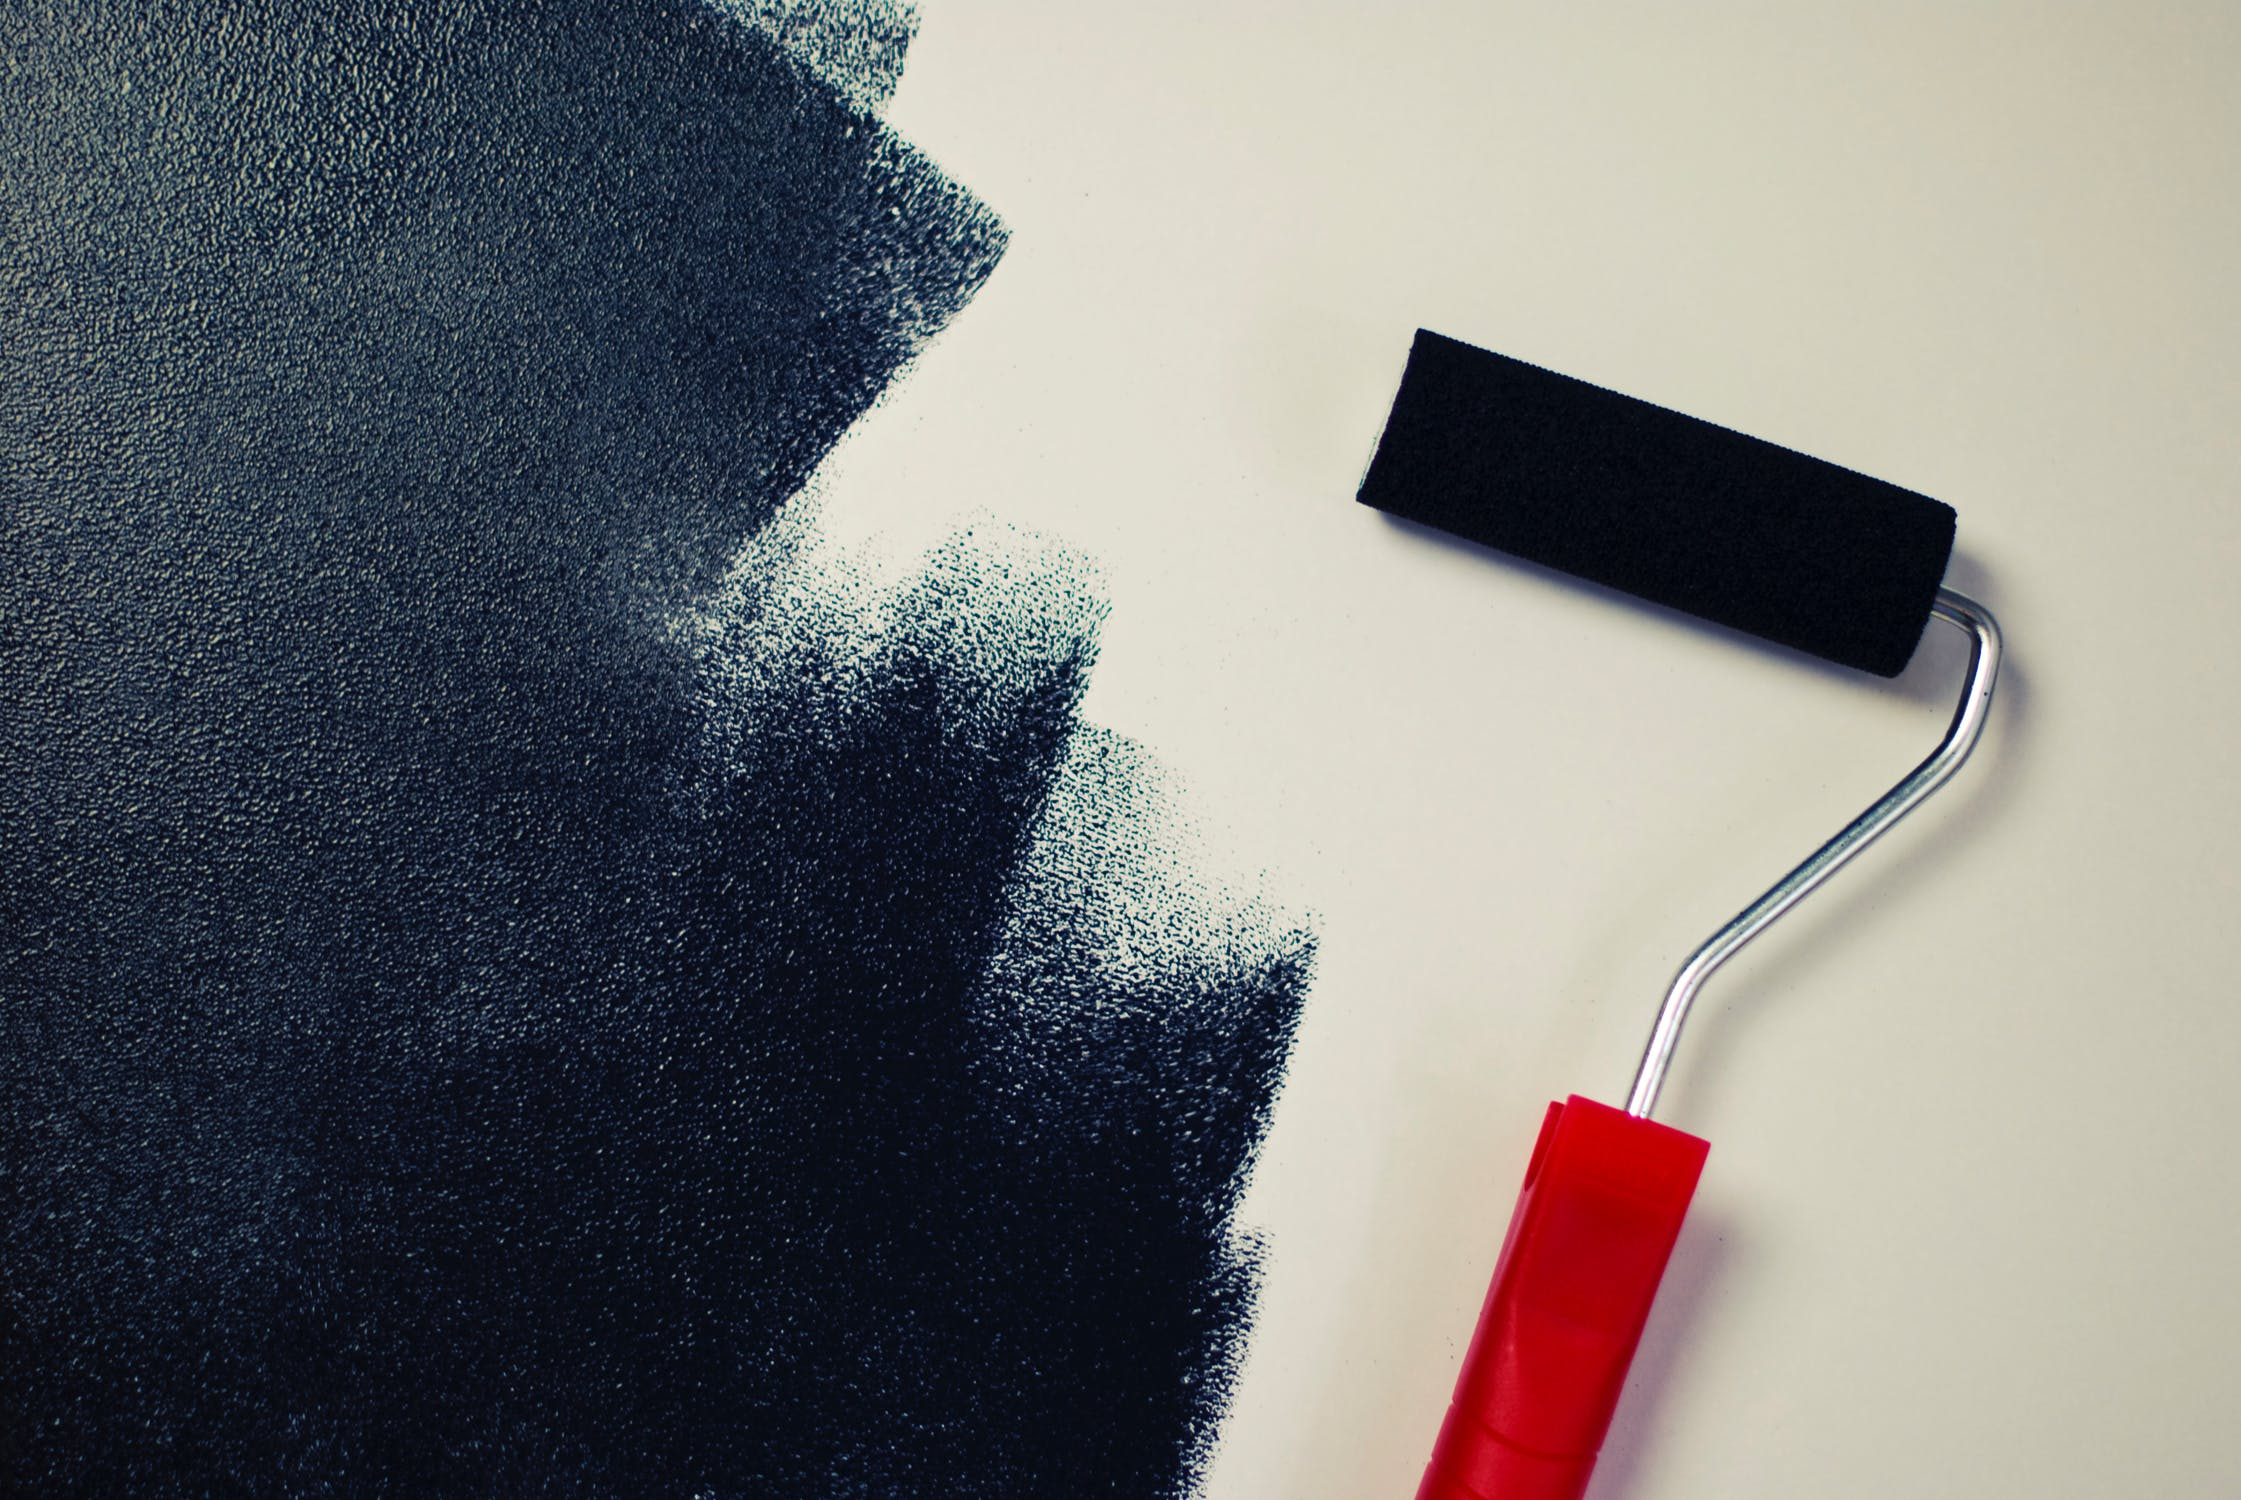 Choosing the Right Paint for Your Property